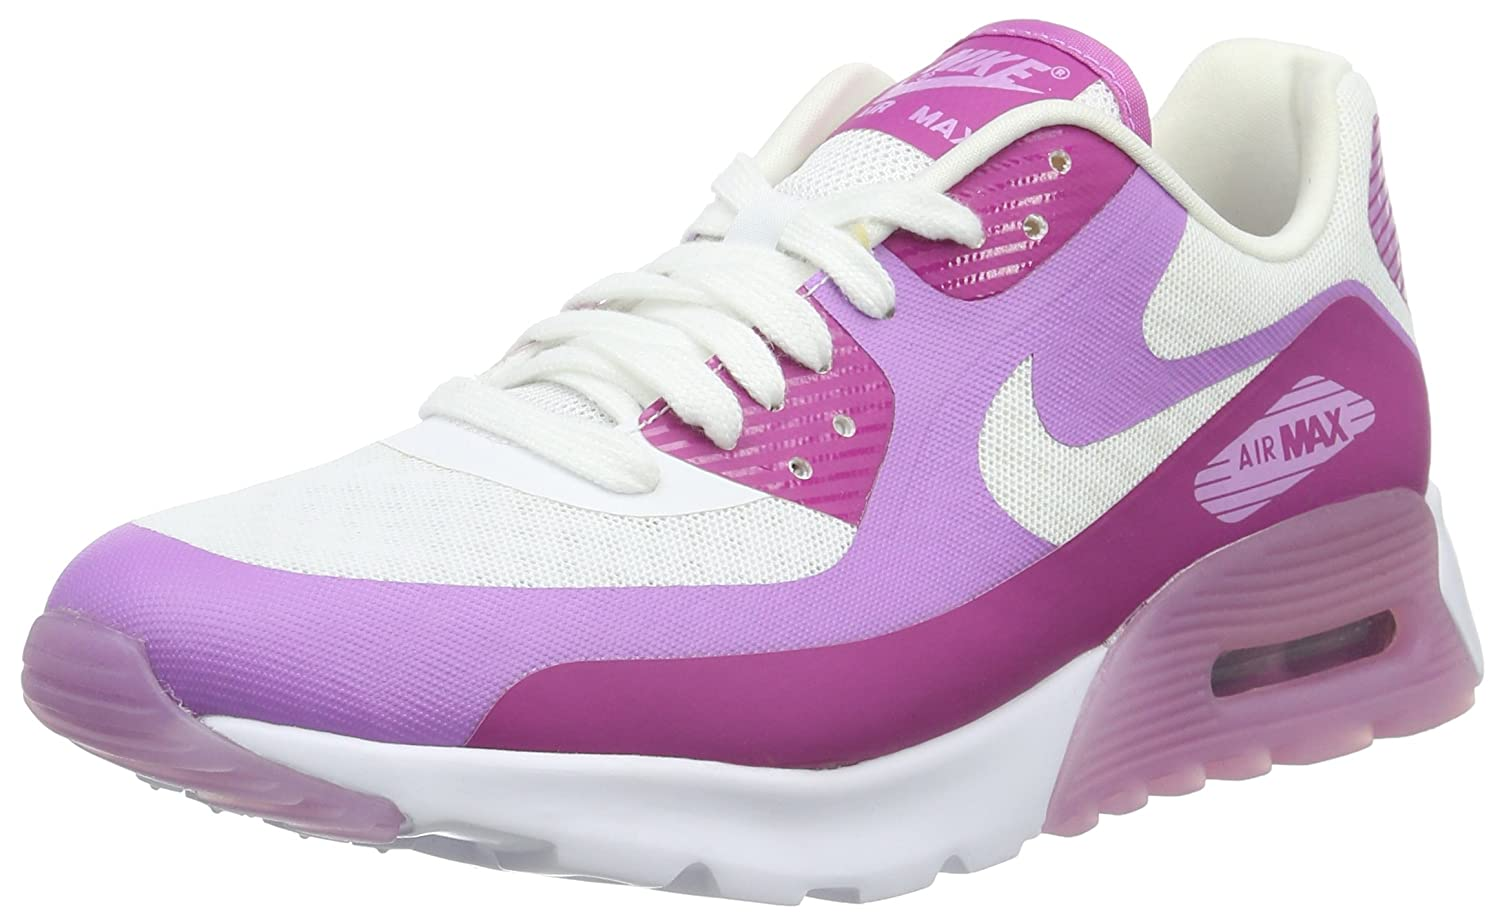 premium selection 0d3fe abed3 ... ireland amazon nike womens air max 90 ultra br shoes b8492 dca1f